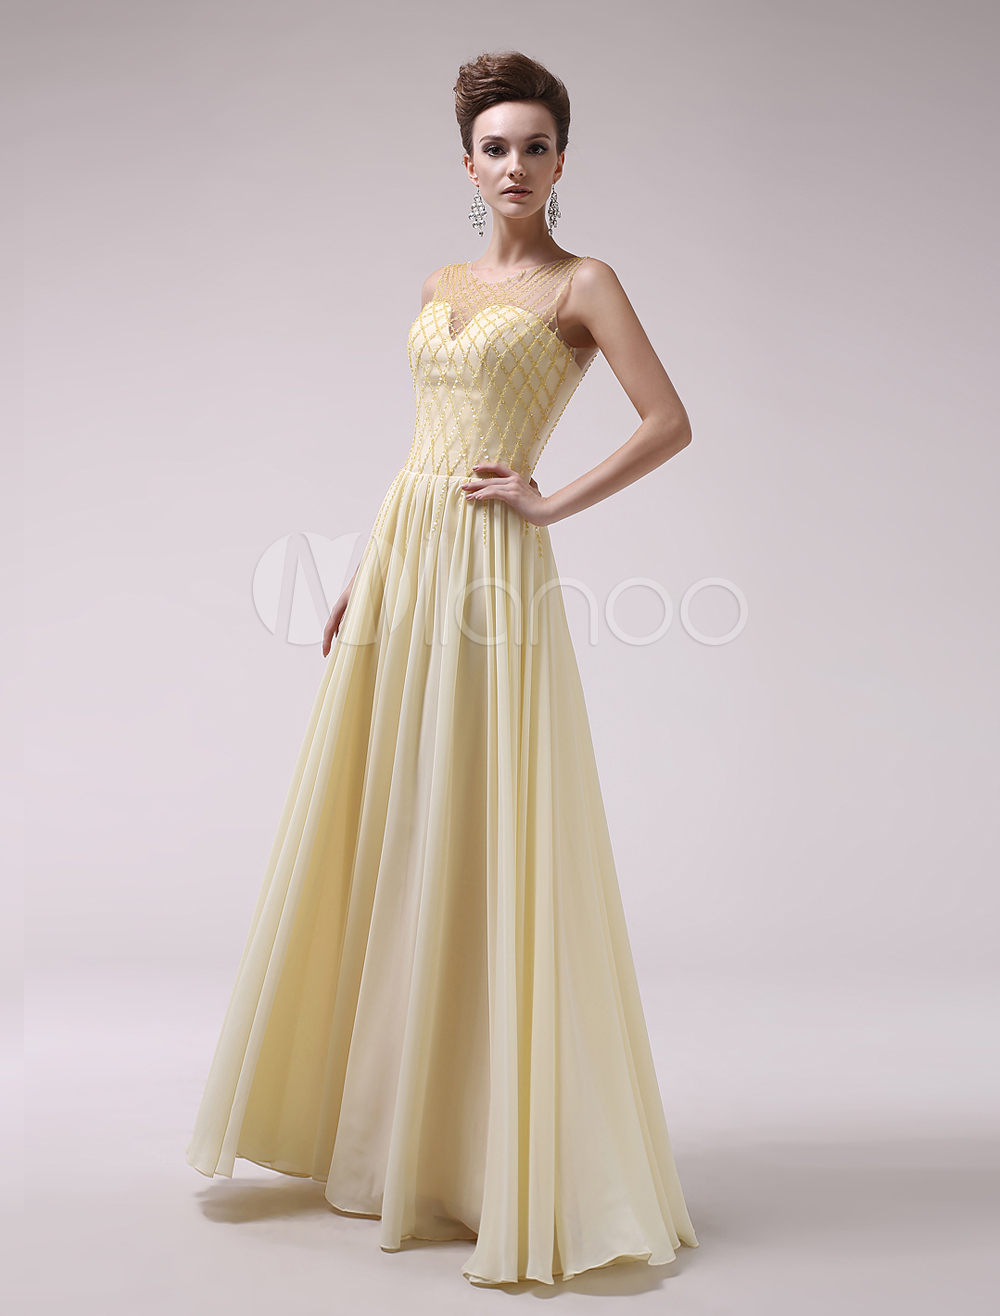 Buy Daffodil Beading Jewel Neck A-line Chiffon Sexy Evening Dress Milanoo for $128.69 in Milanoo store